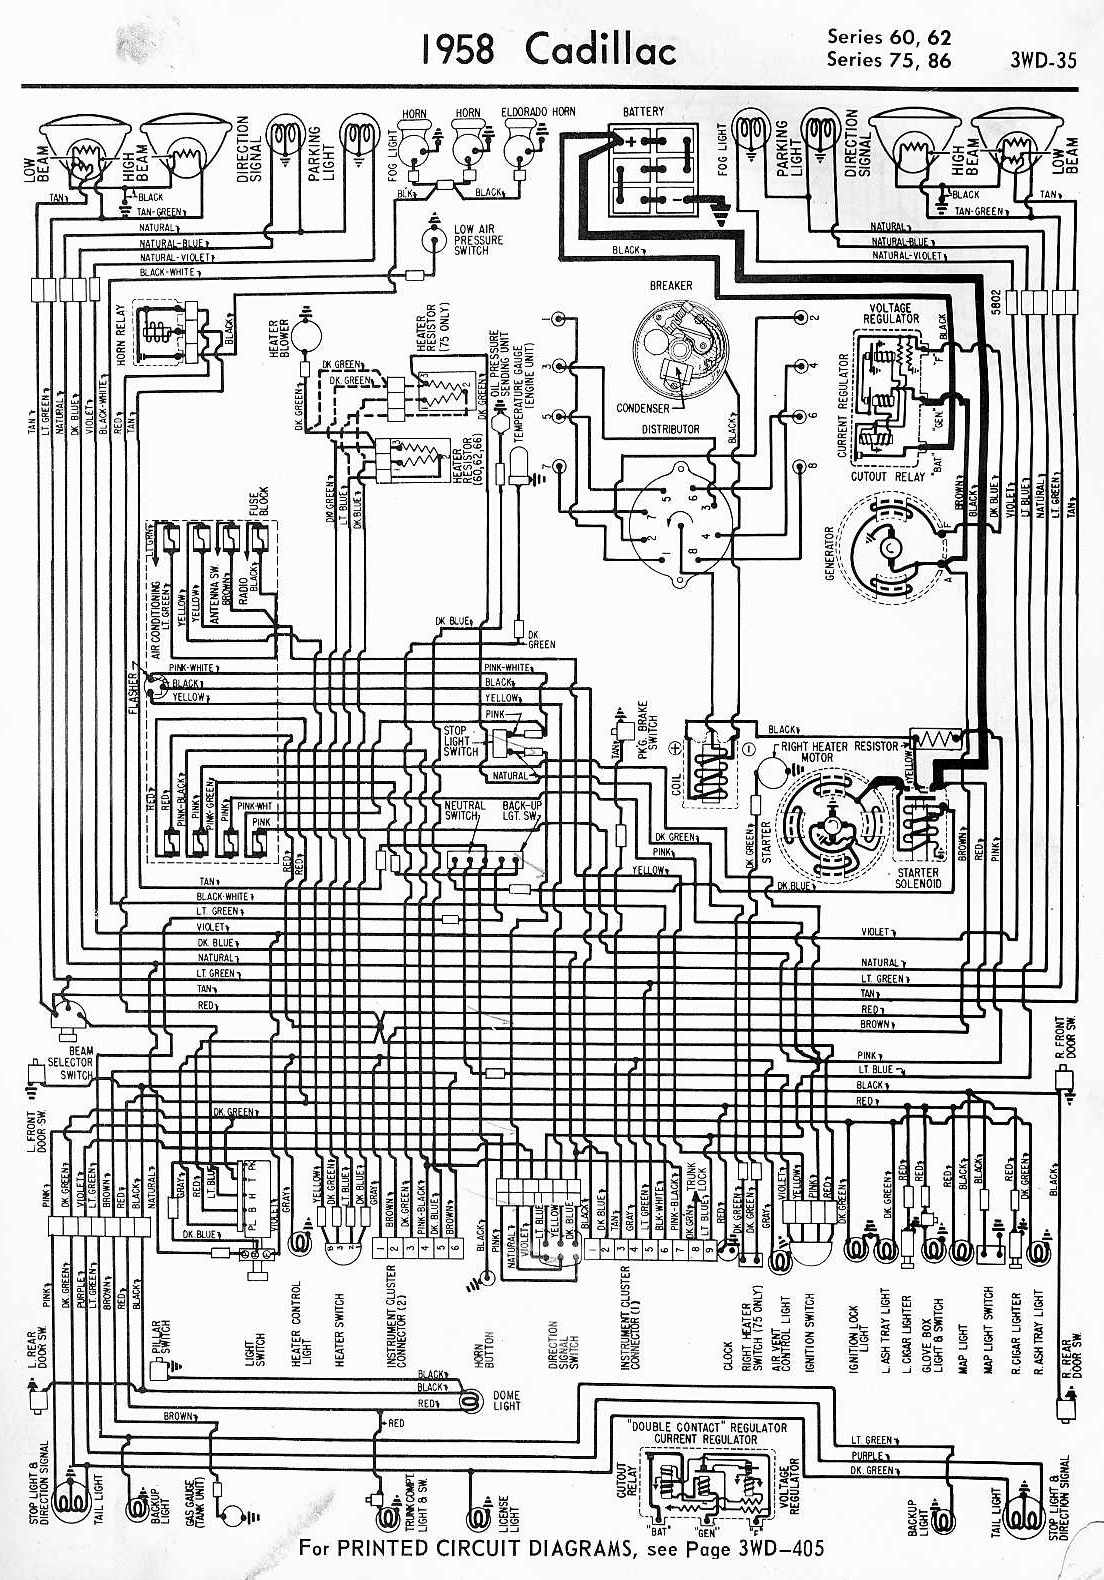 Cadillac Wiring Diagrams : Wiring diagram for cadillac best site harness